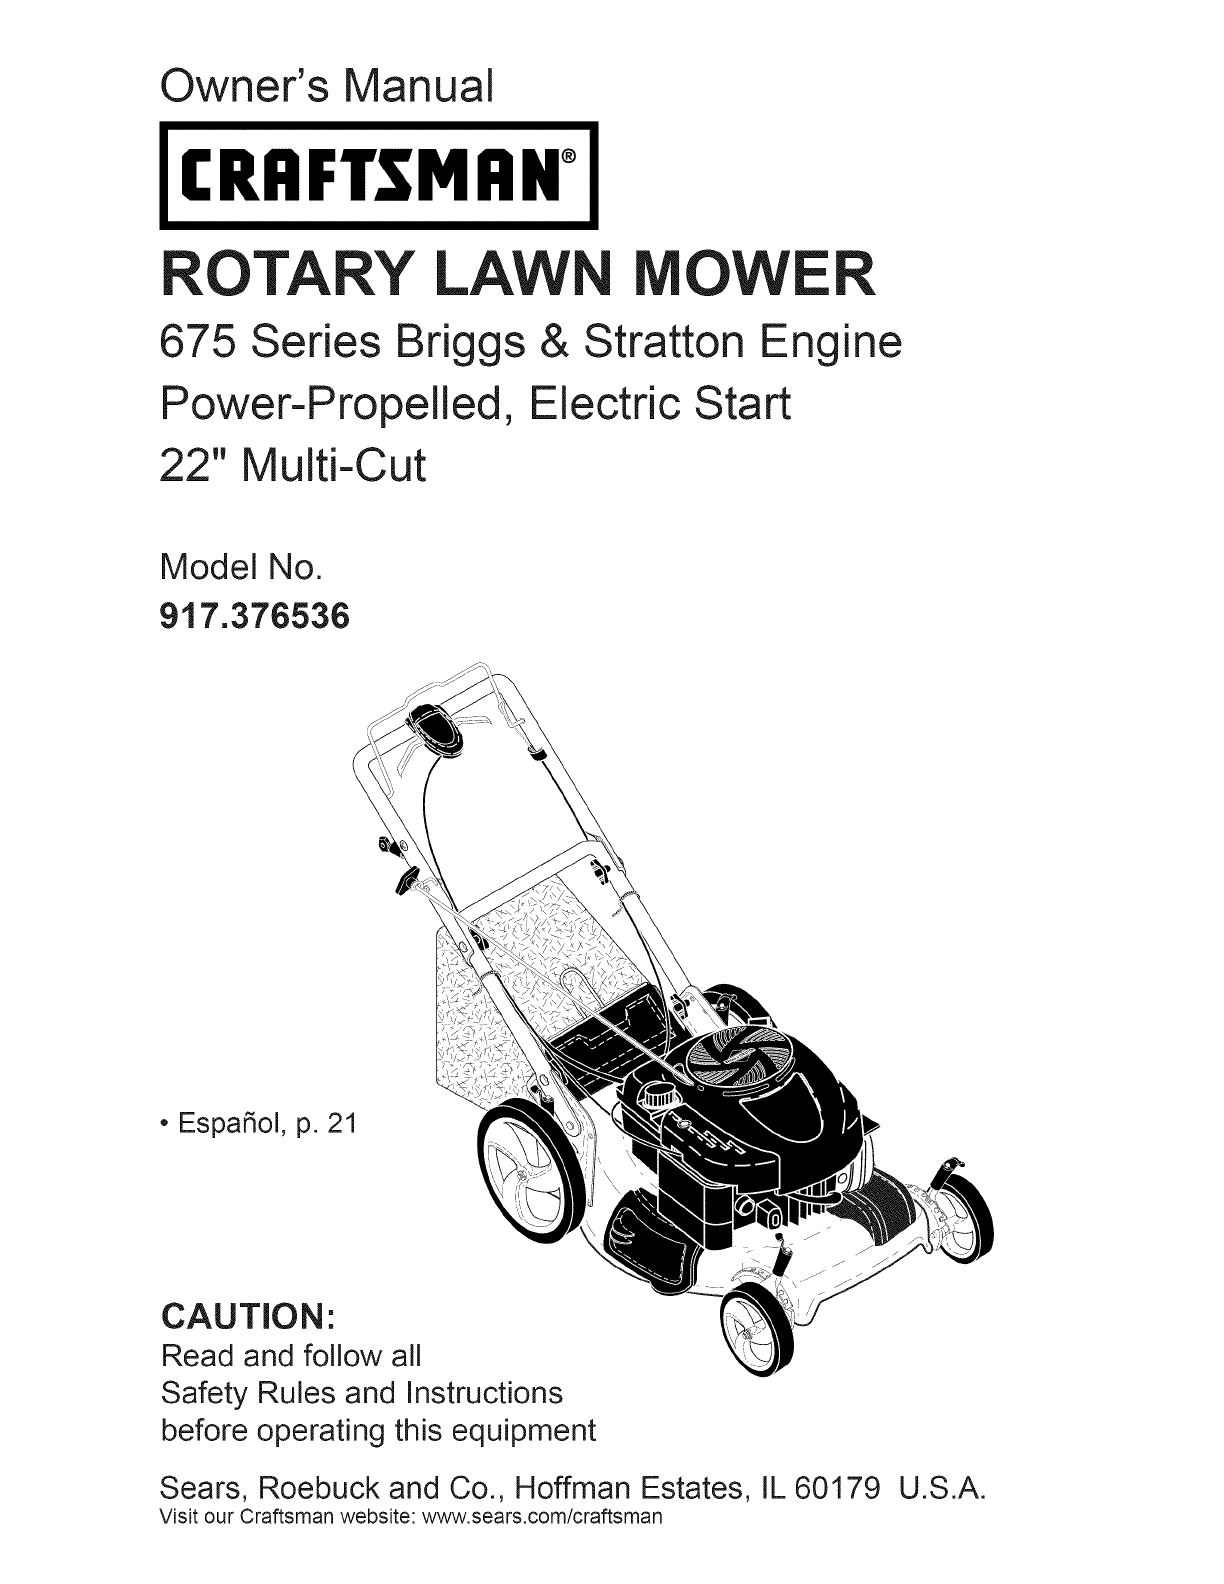 craftsman lawn mower 917 376536 user guide manualsonline com rh tv manualsonline com Craftsman Model 917 Lawn Mower Craftsman Riding Lawn Mower Engines